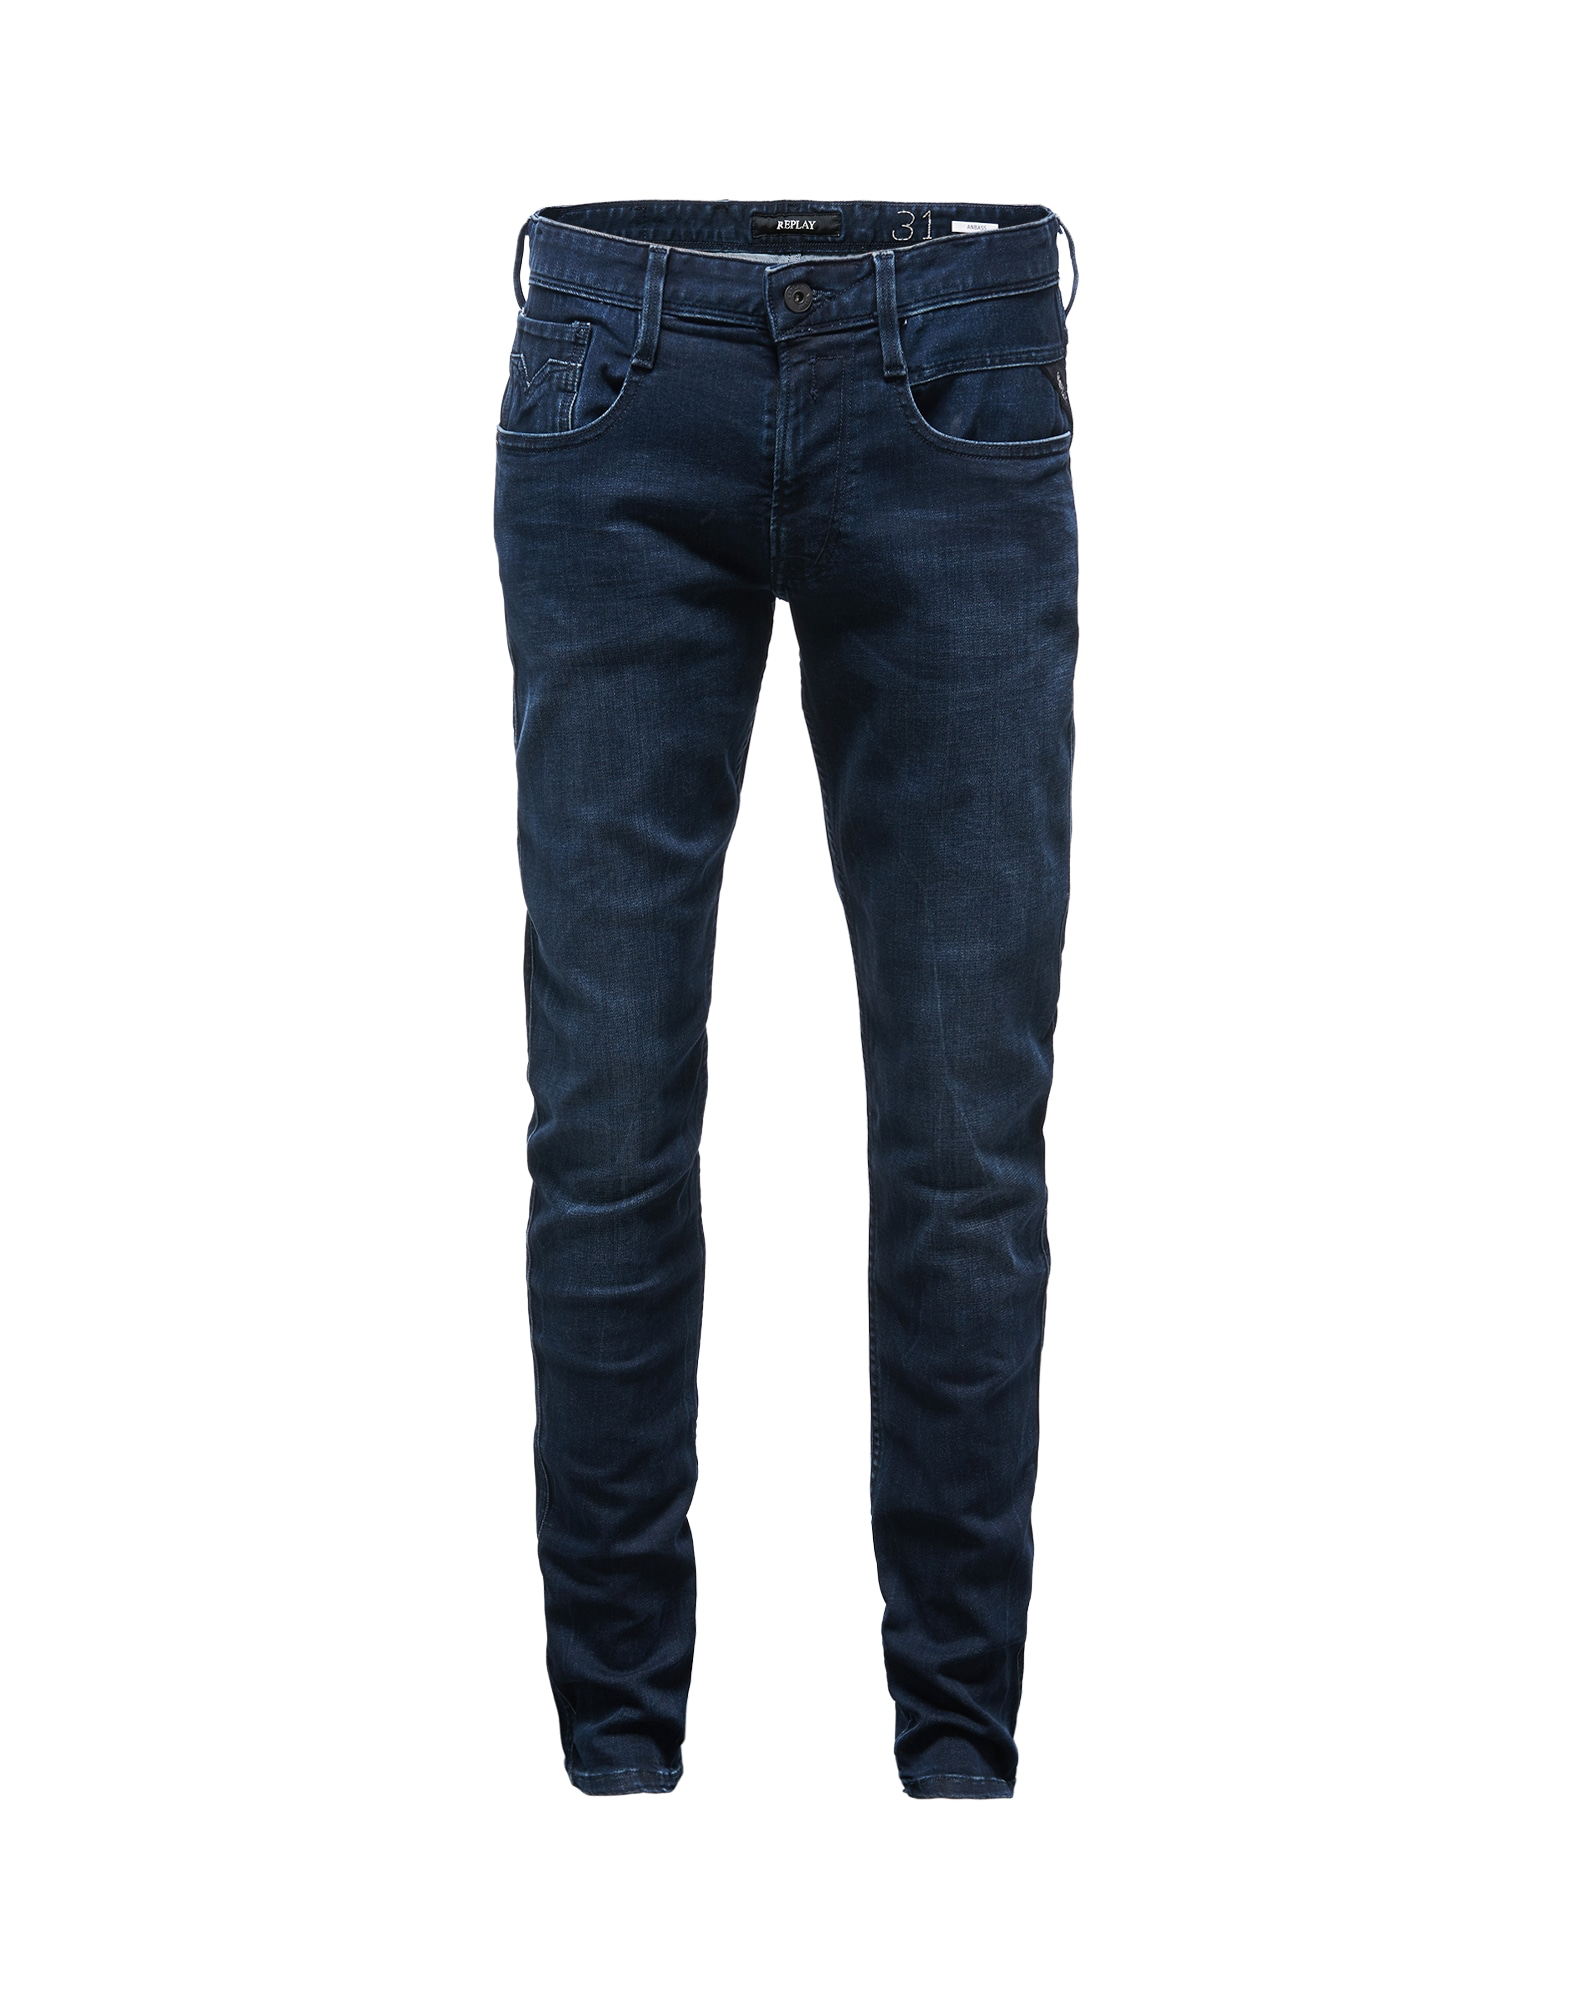 REPLAY Heren Jeans Anbass donkerblauw